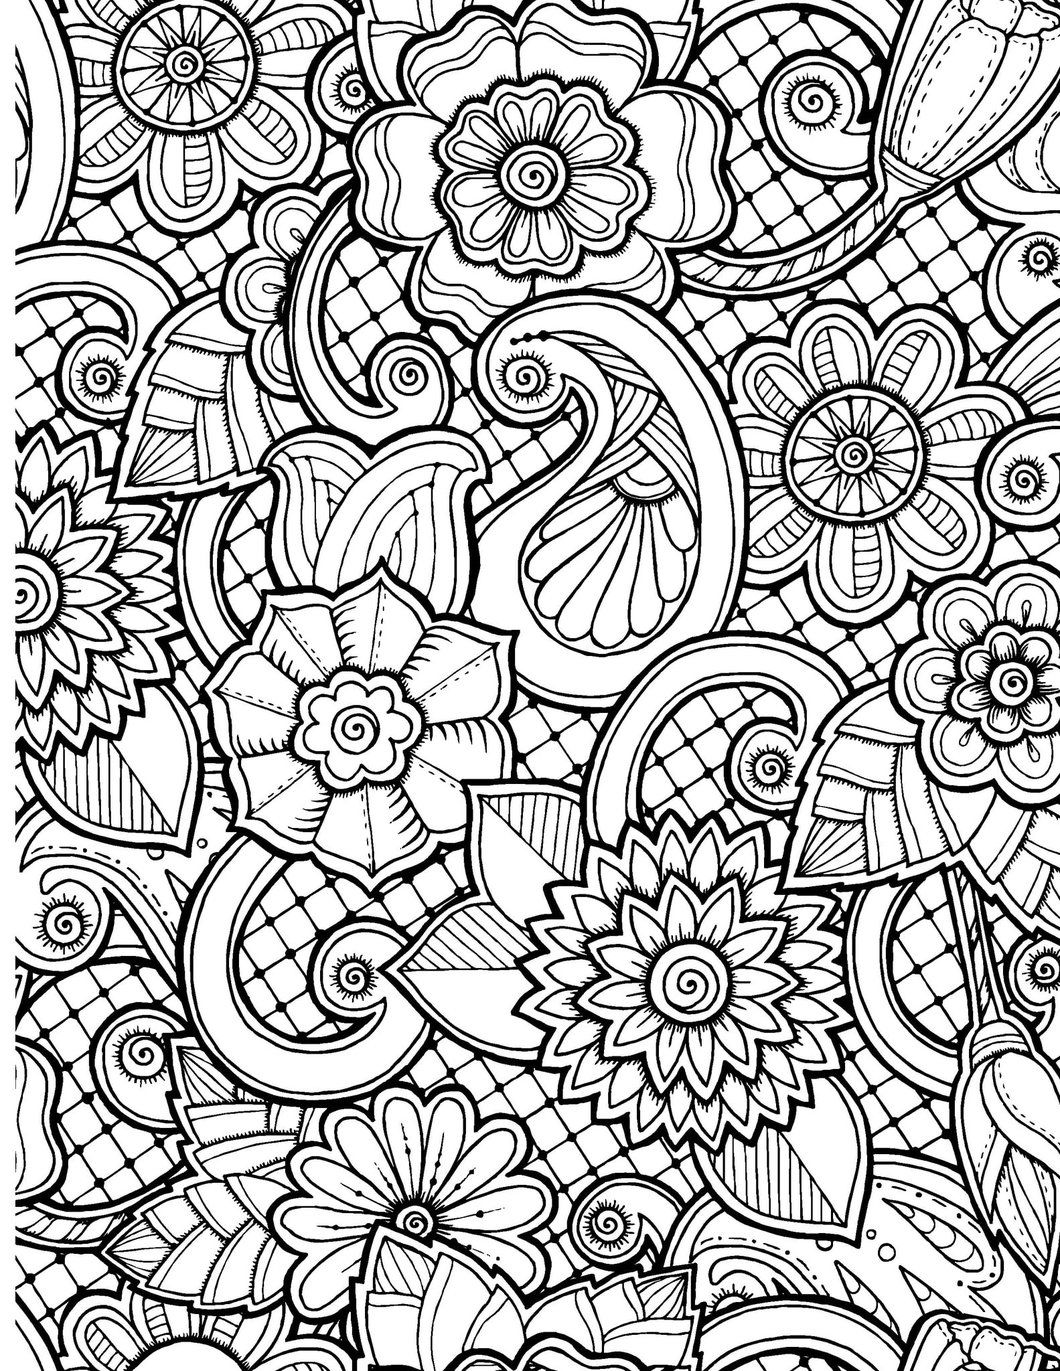 abstract flower coloring pages abstract flower art coloring pages coloring pages coloring pages abstract flower